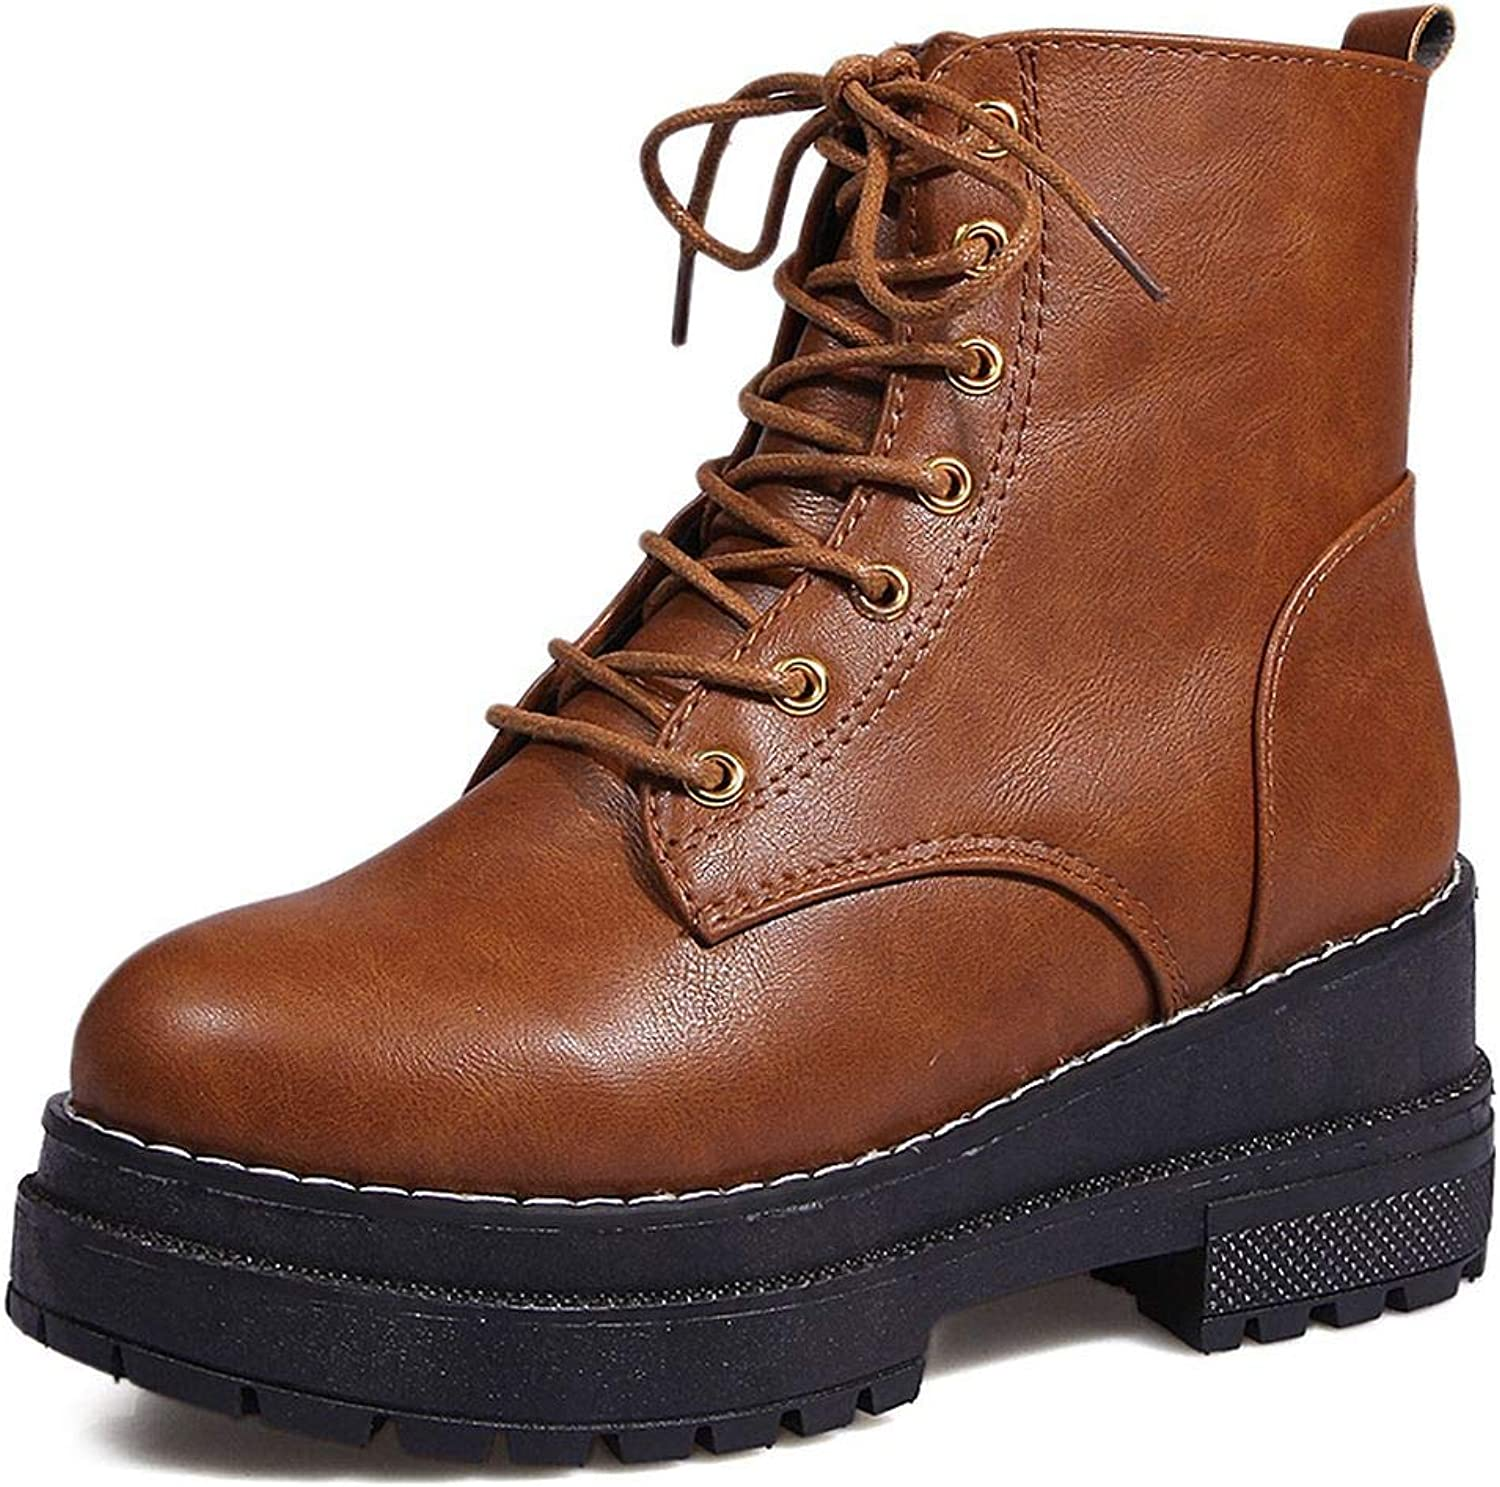 Superb Zone Women shoes Motorcycle Boots New Lace Up Proof Platform Thick Heel Boots Women,Brown,8.5